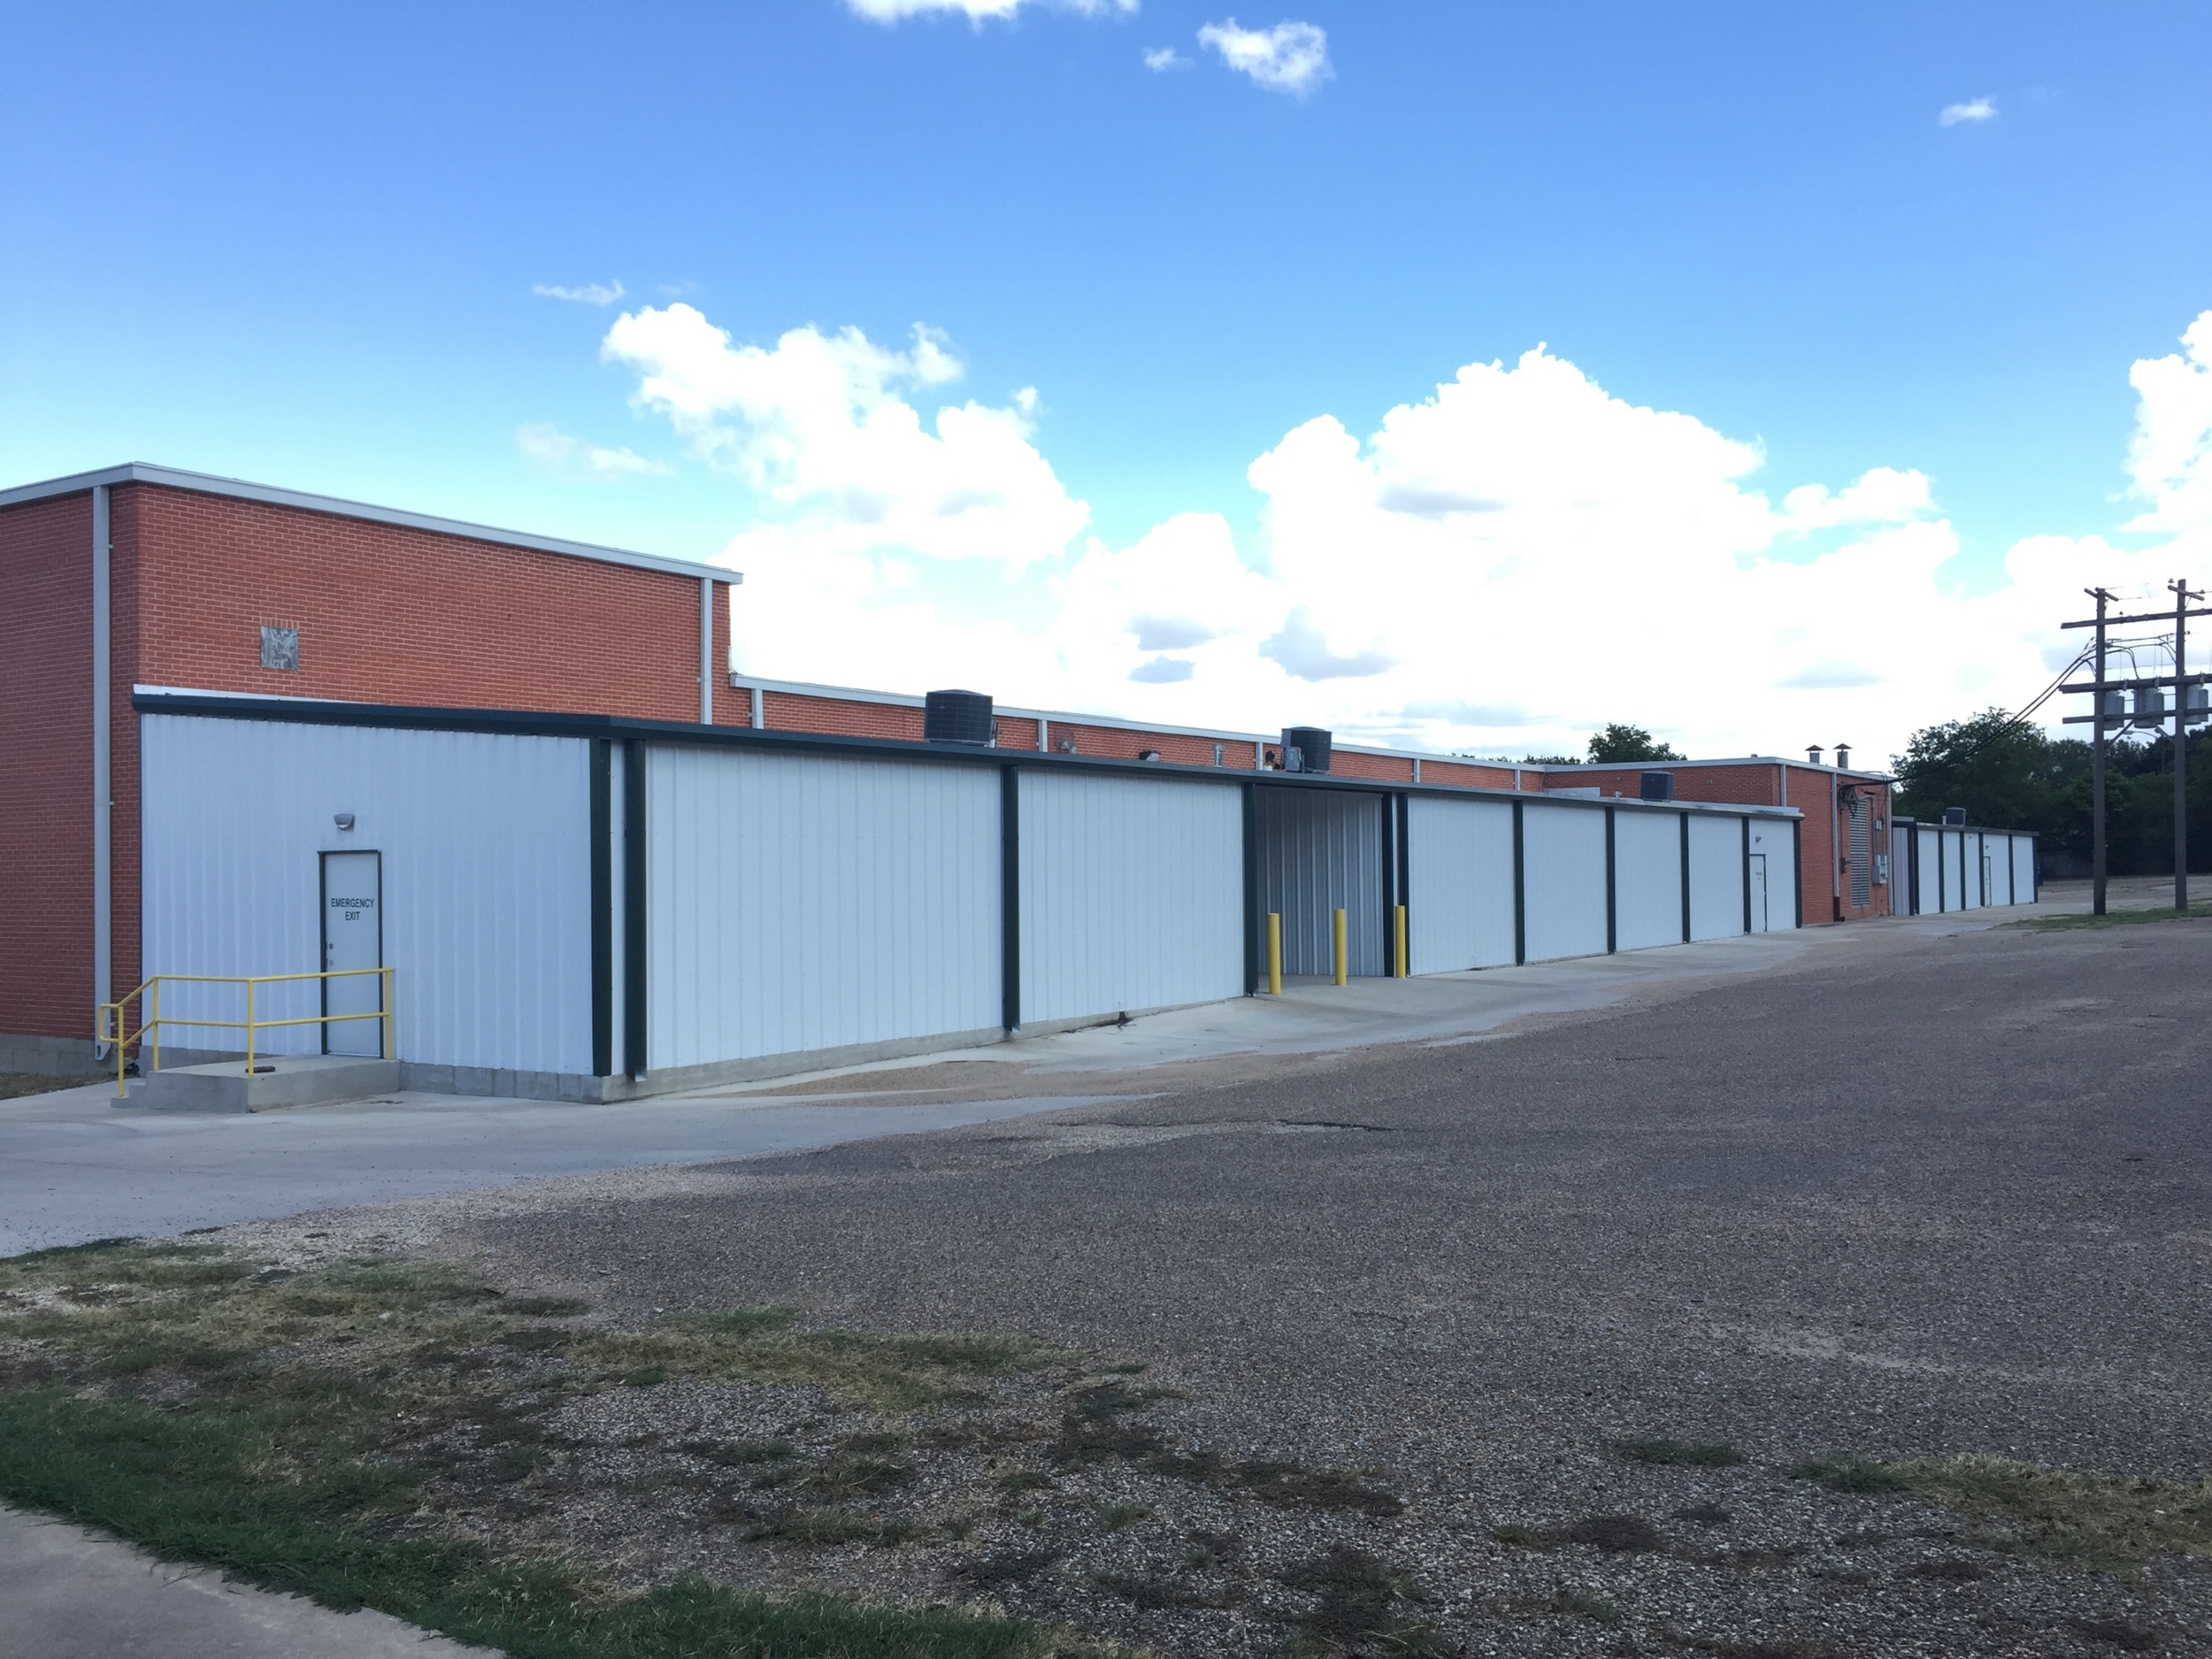 Ideal Self Storage Climate Controlled Storage  Expansion in Waco, TX. Completed October 2014